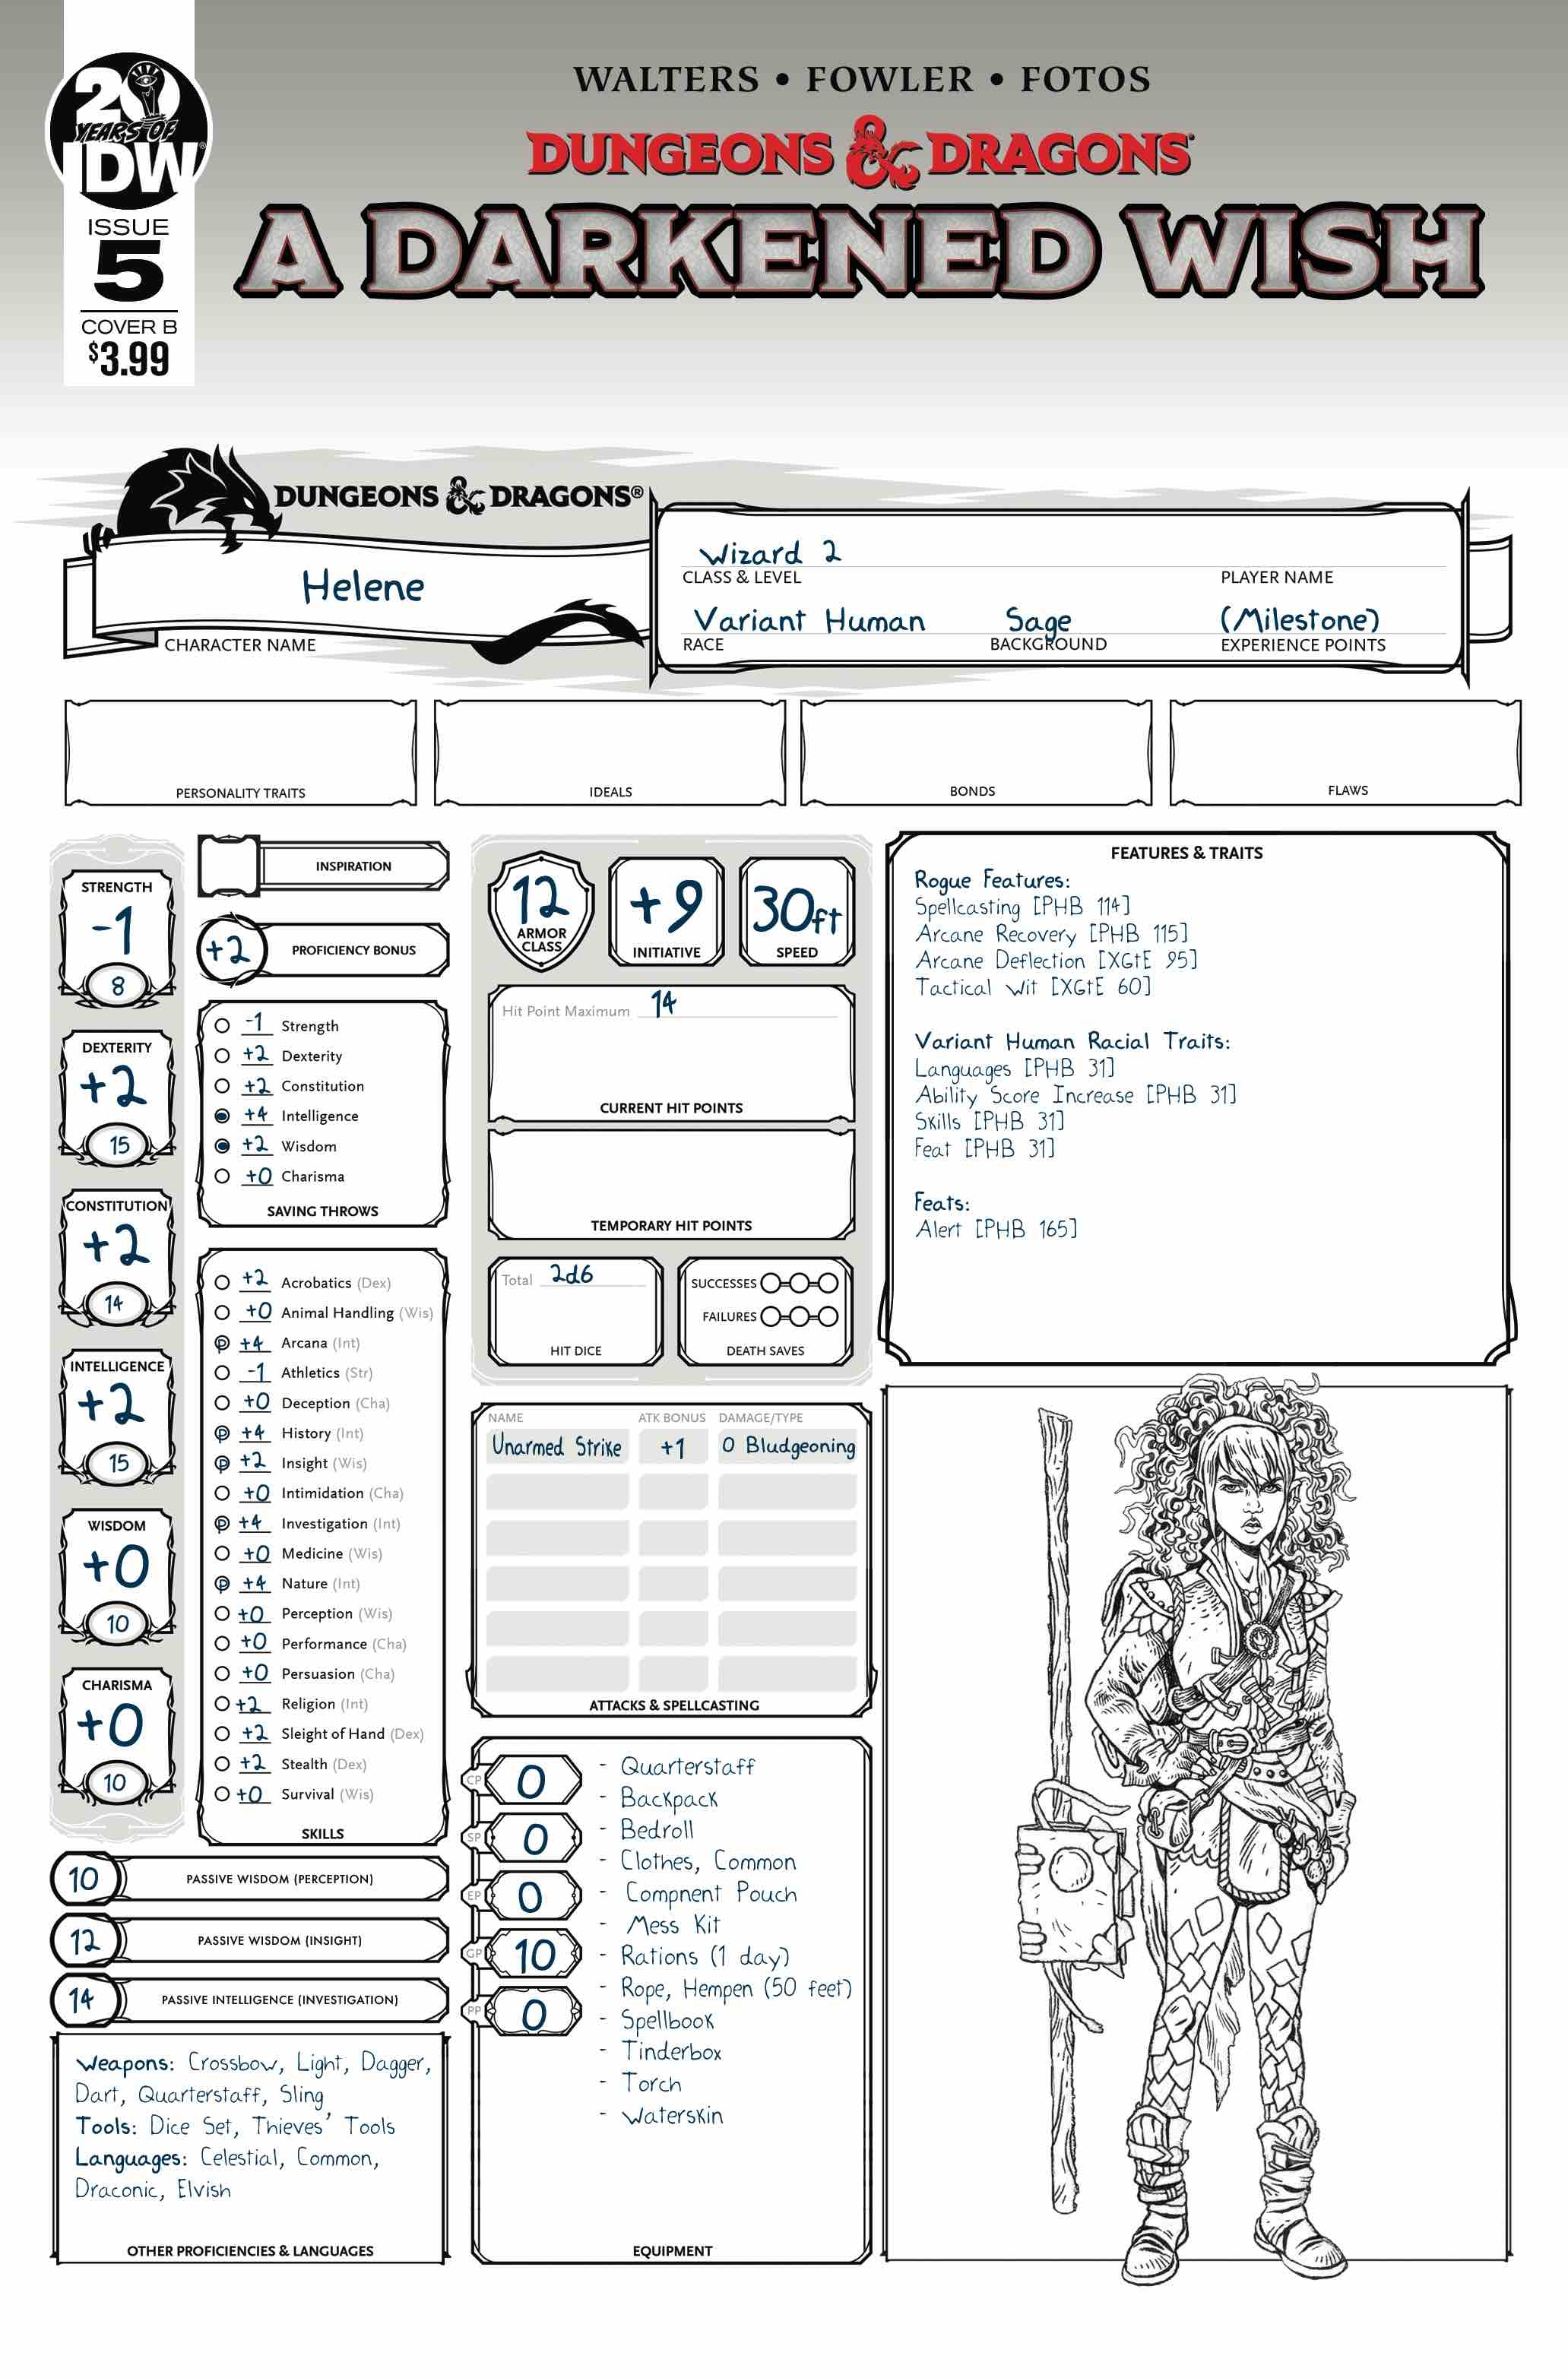 DUNGEONS & DRAGONS A DARKENED WISH #5 (OF 5) CVR B CHARACTER